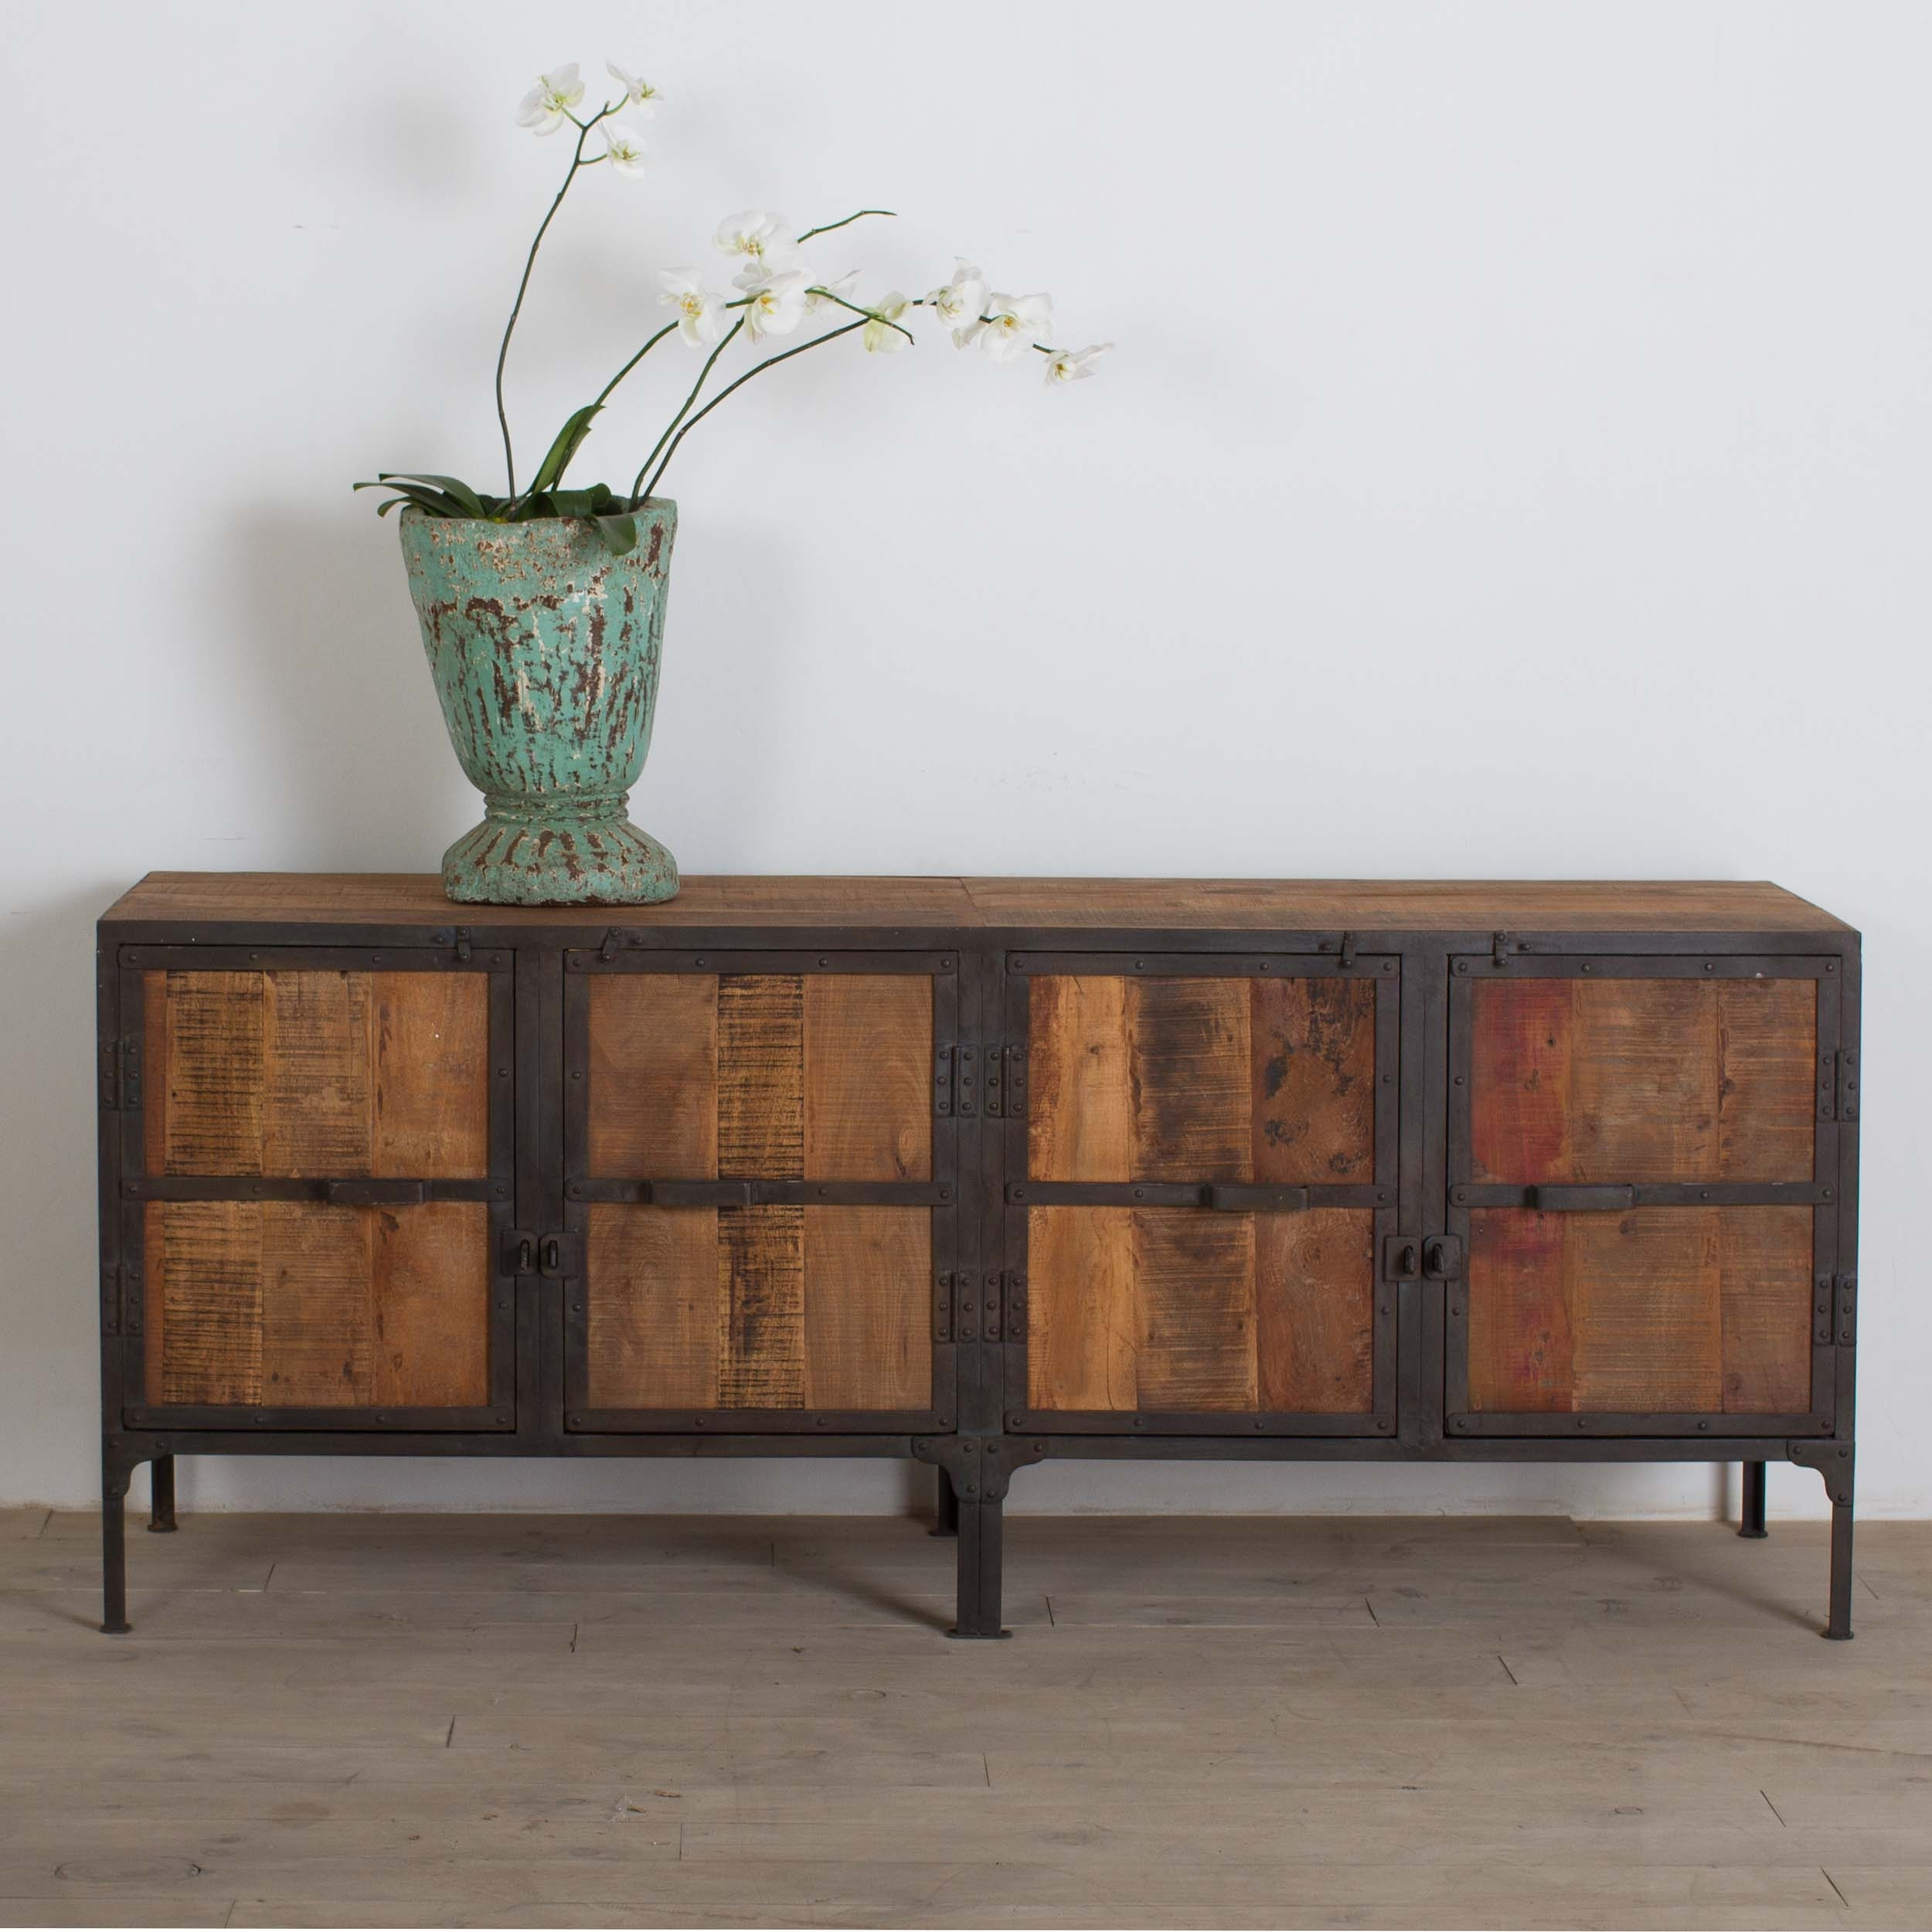 Shop Handmade Cg Sparks Handmade Hyderabad Reclaimed Wood And Metal within White Wash Carved Door Jumbo Sideboards (Image 27 of 30)